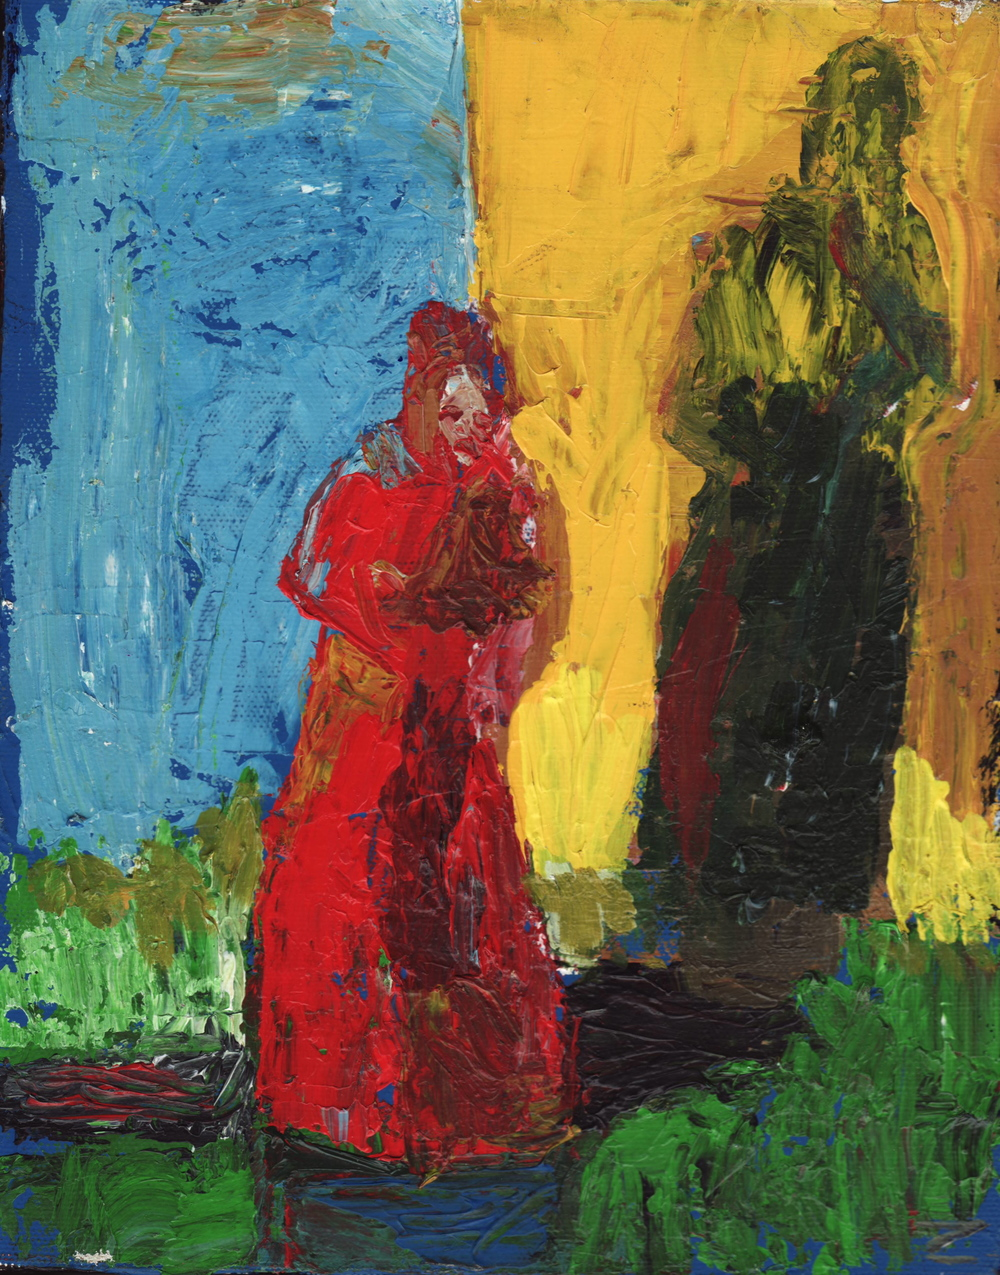 painting lady in red 8inc by 10 oil 2006.JPG